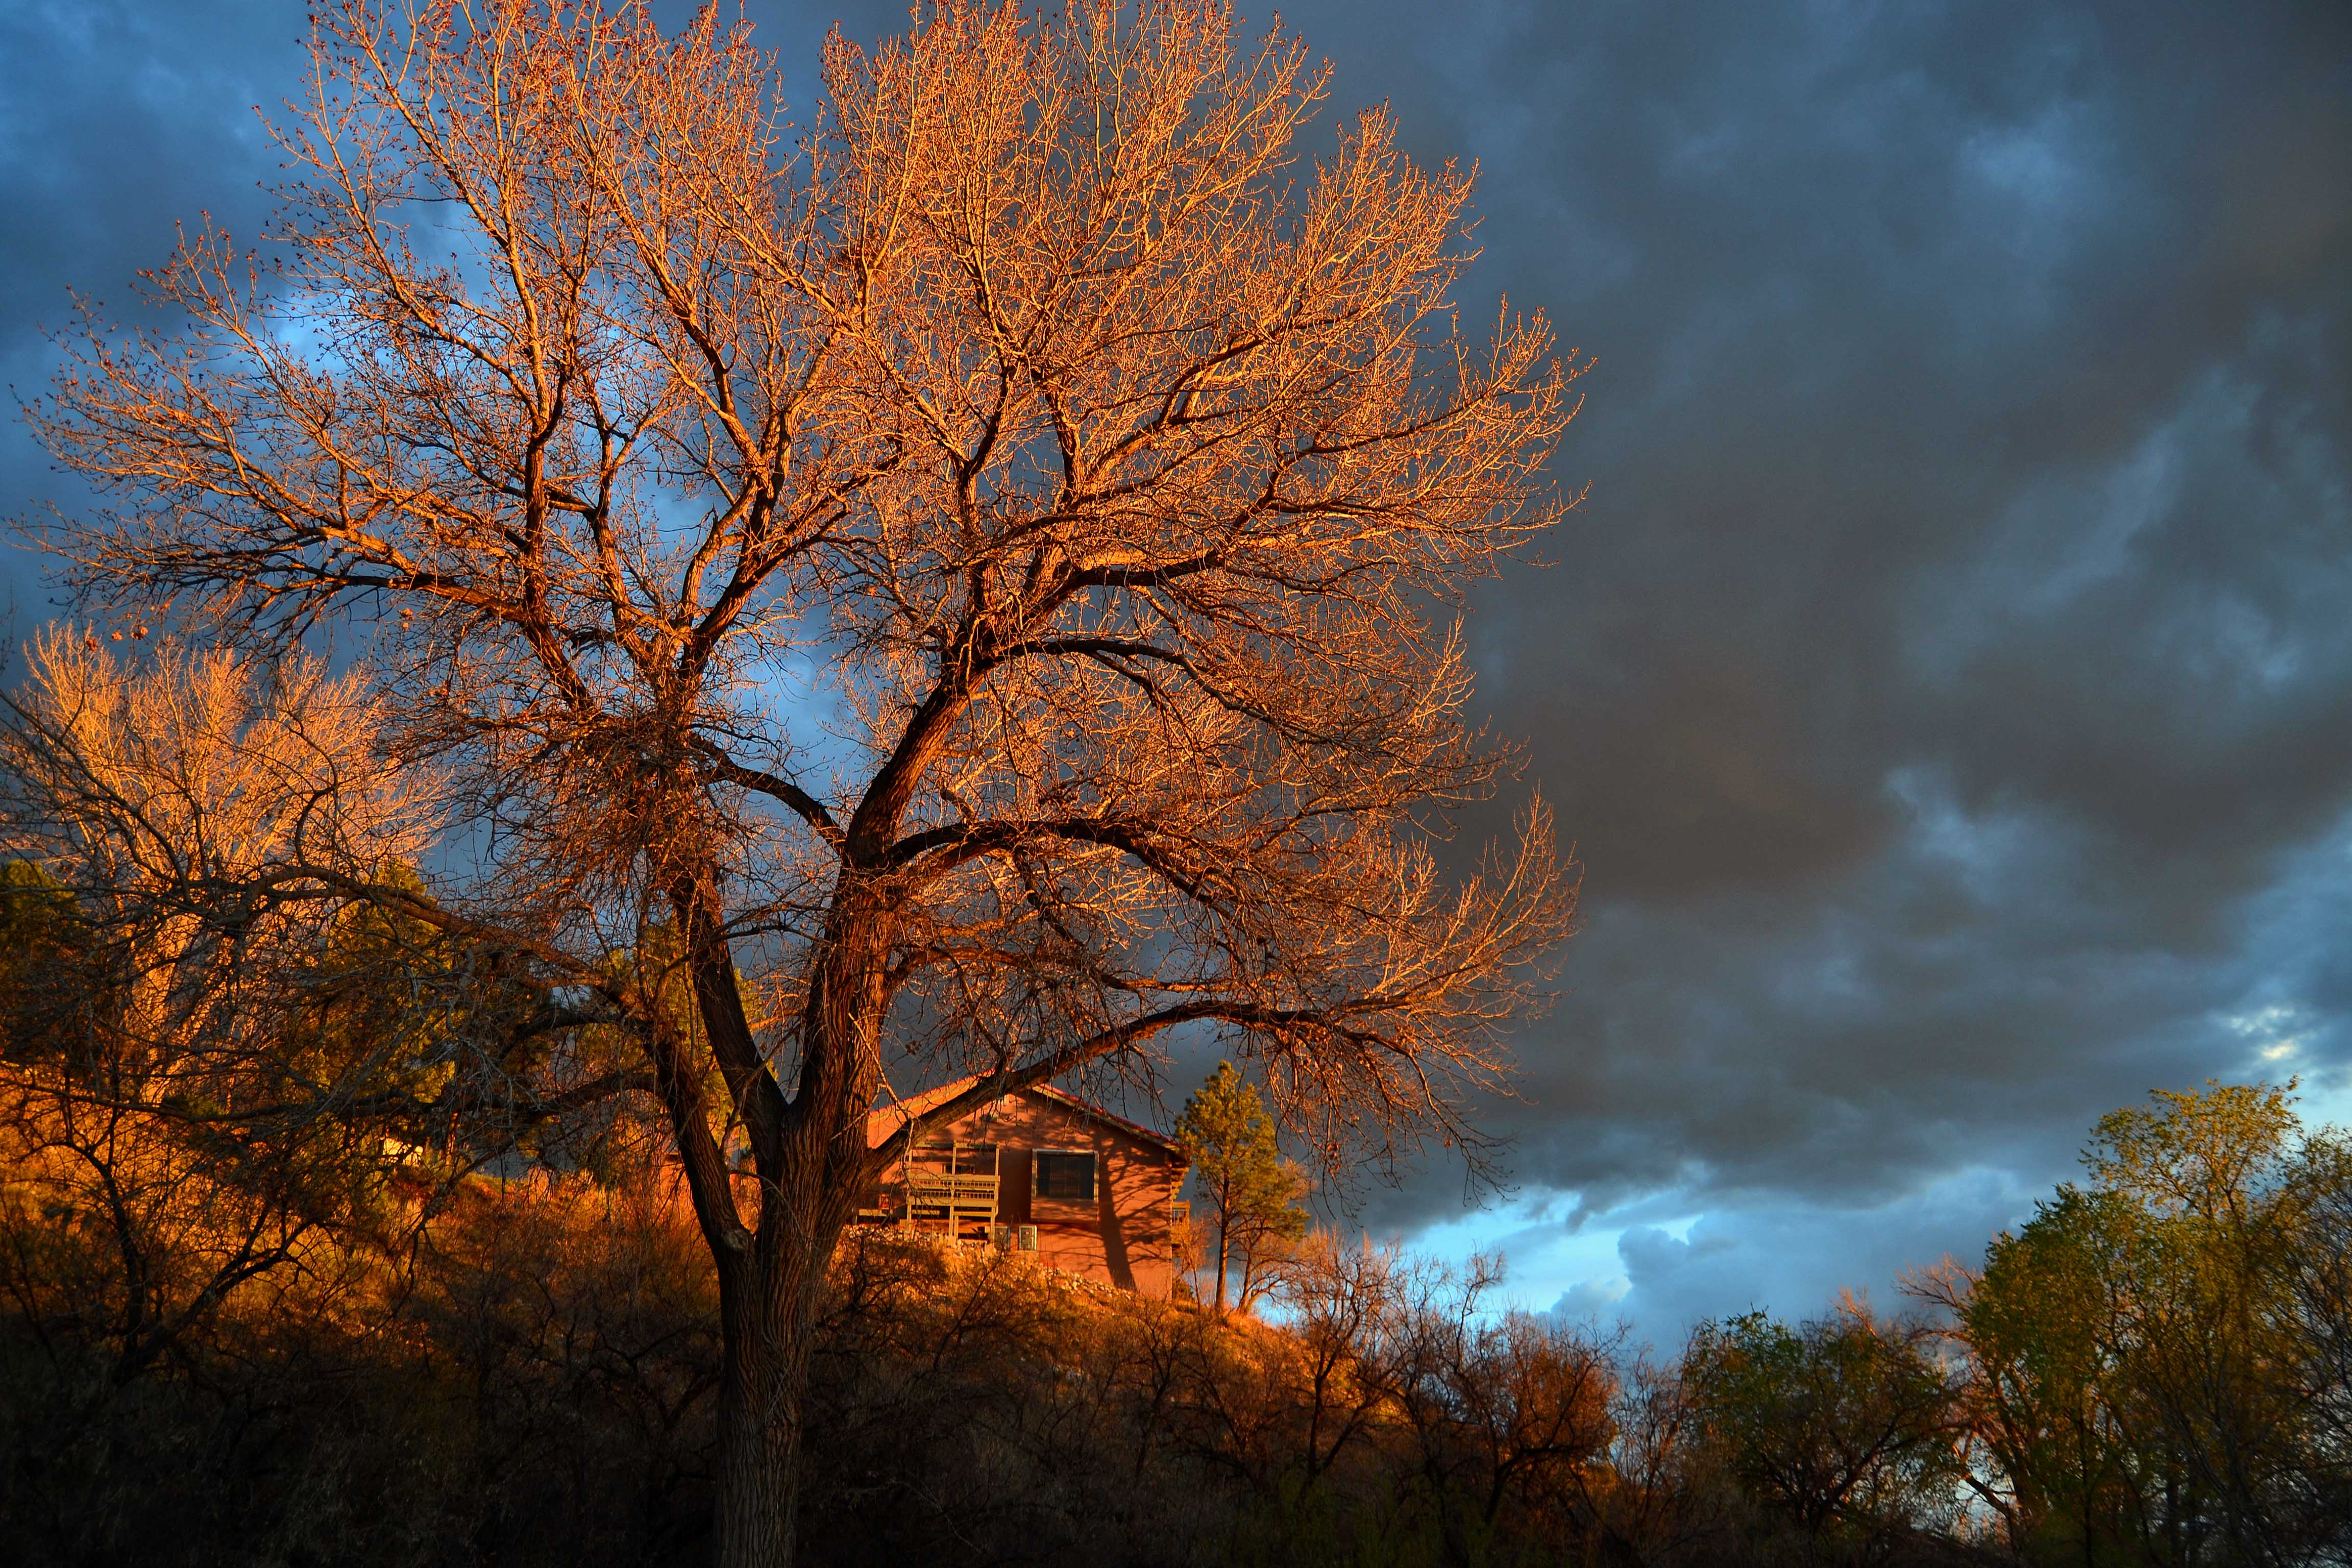 Fiery Sunset Tree and House